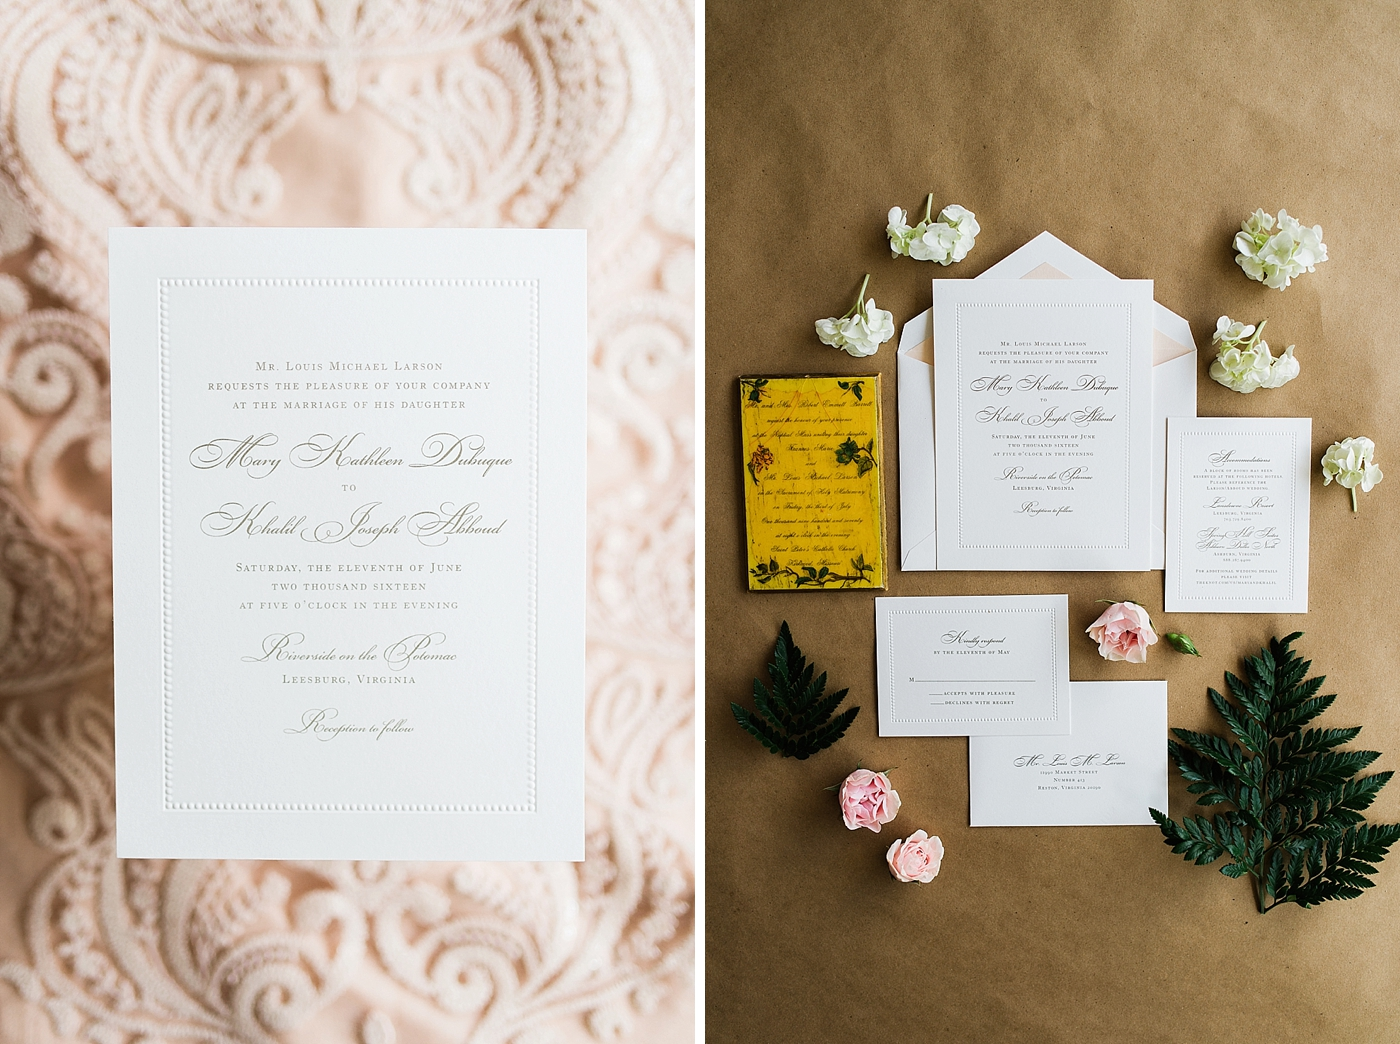 Blush Color wedding invitations